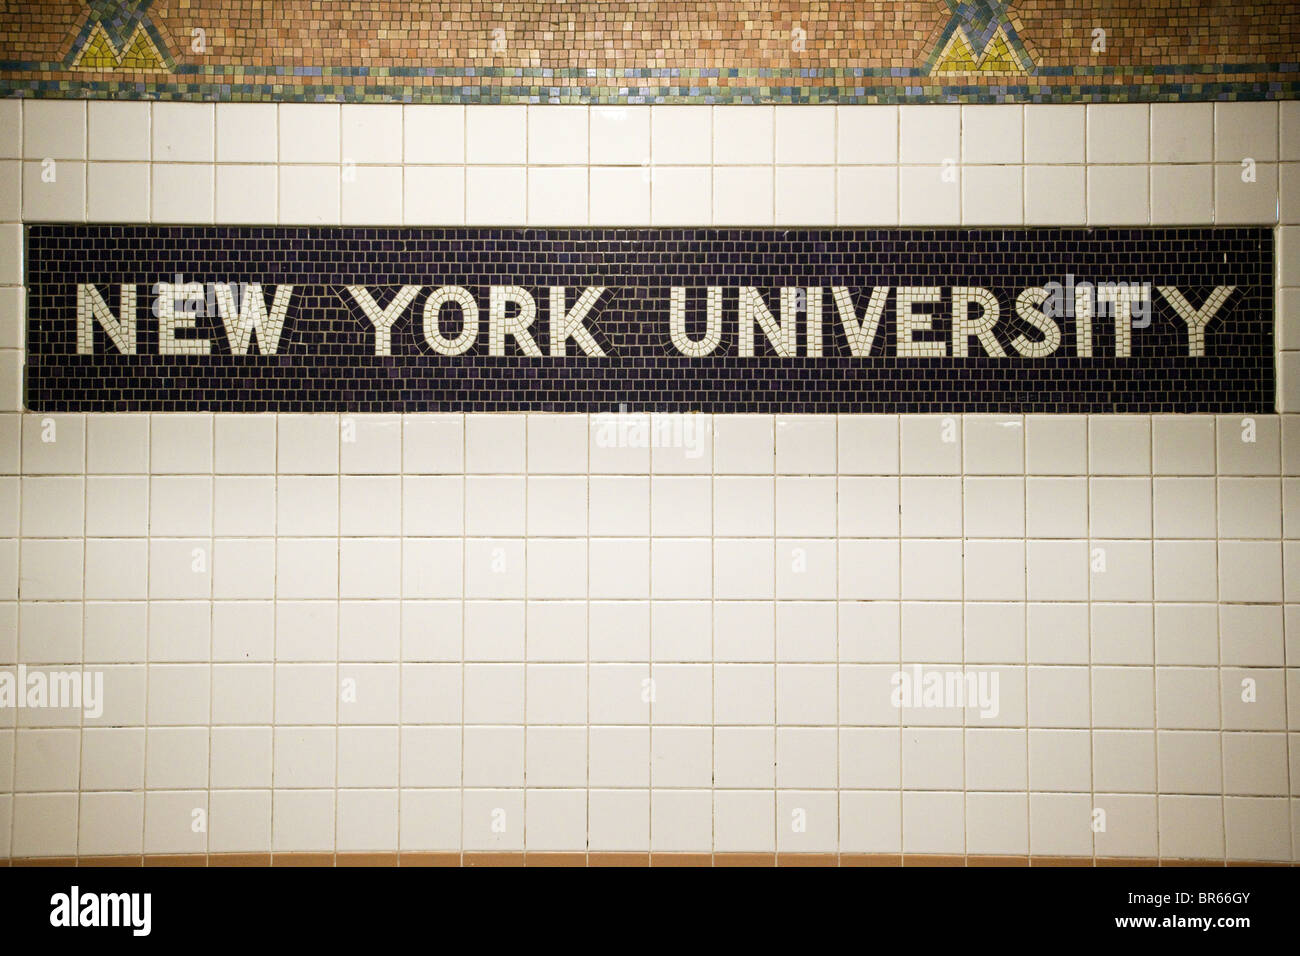 Decorative tile on the wall in the sheridan square subway station in decorative tile on the wall in the sheridan square subway station in new york for new york university stop dailygadgetfo Choice Image